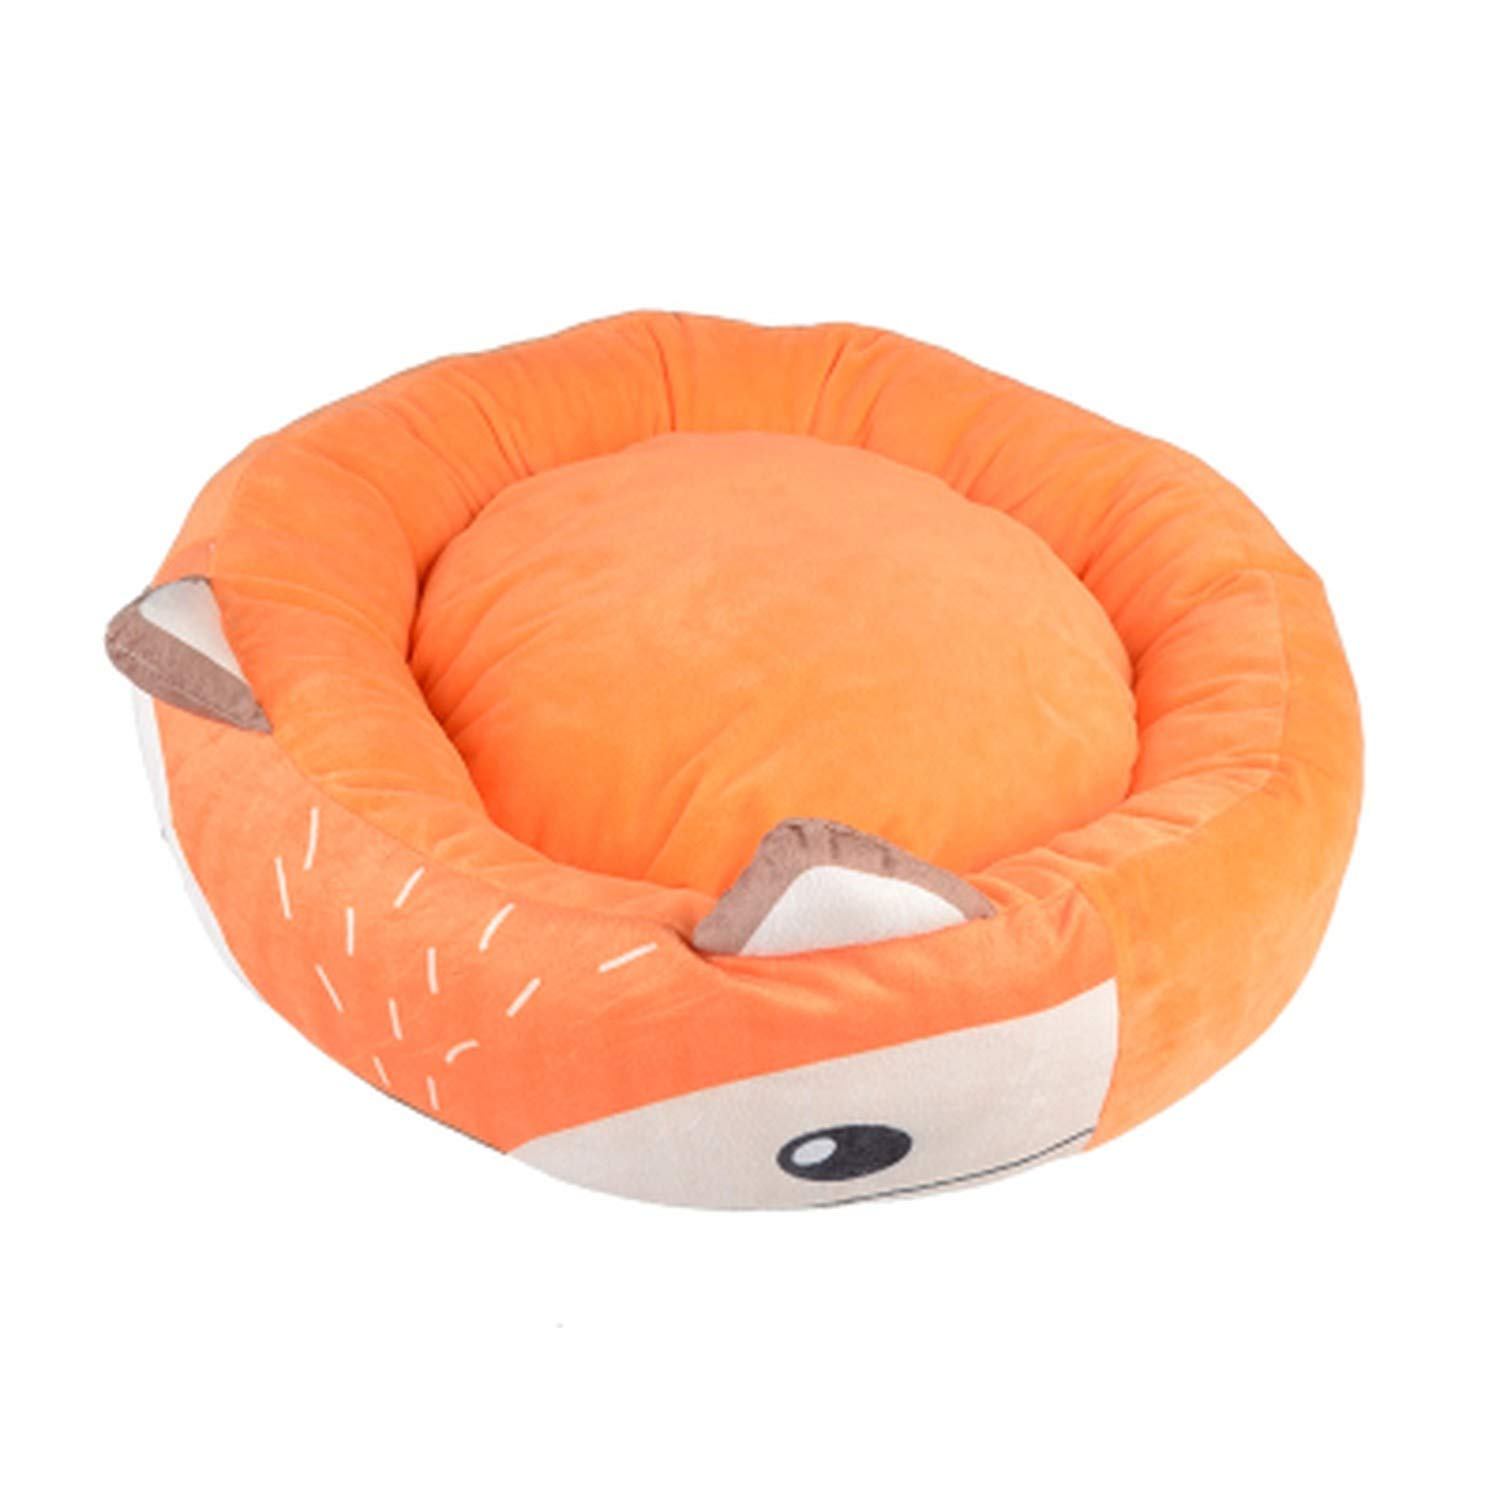 2 S 2 S cat Litter Removable and Washable Warm House Bear Dog Mattress Small and Medium Dog Dog Supplies pet nest,2,S